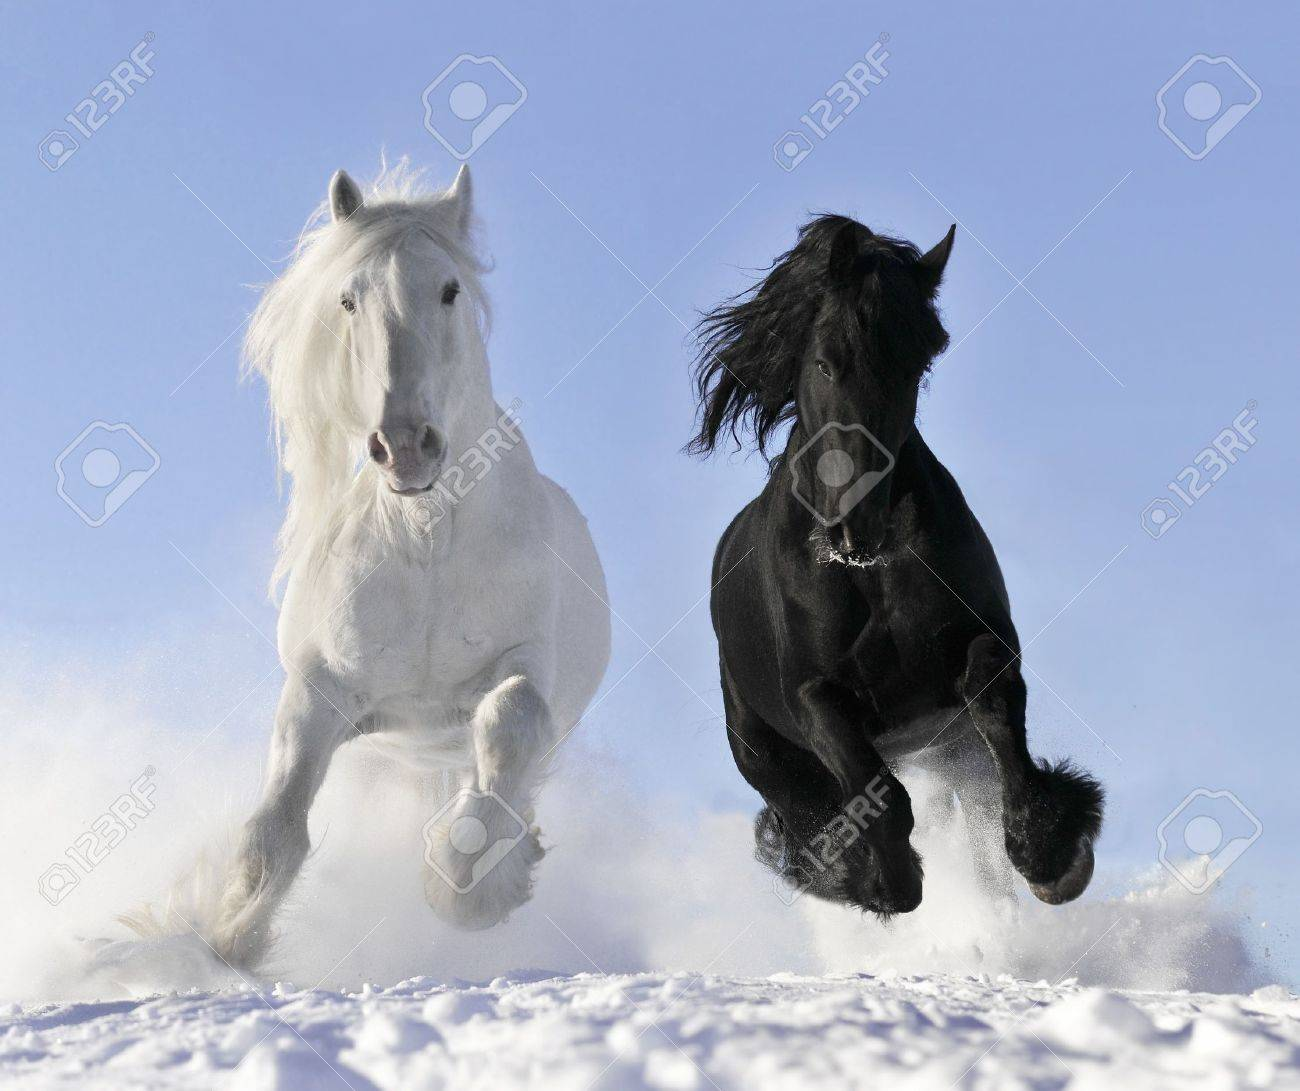 White and Black horse pictures